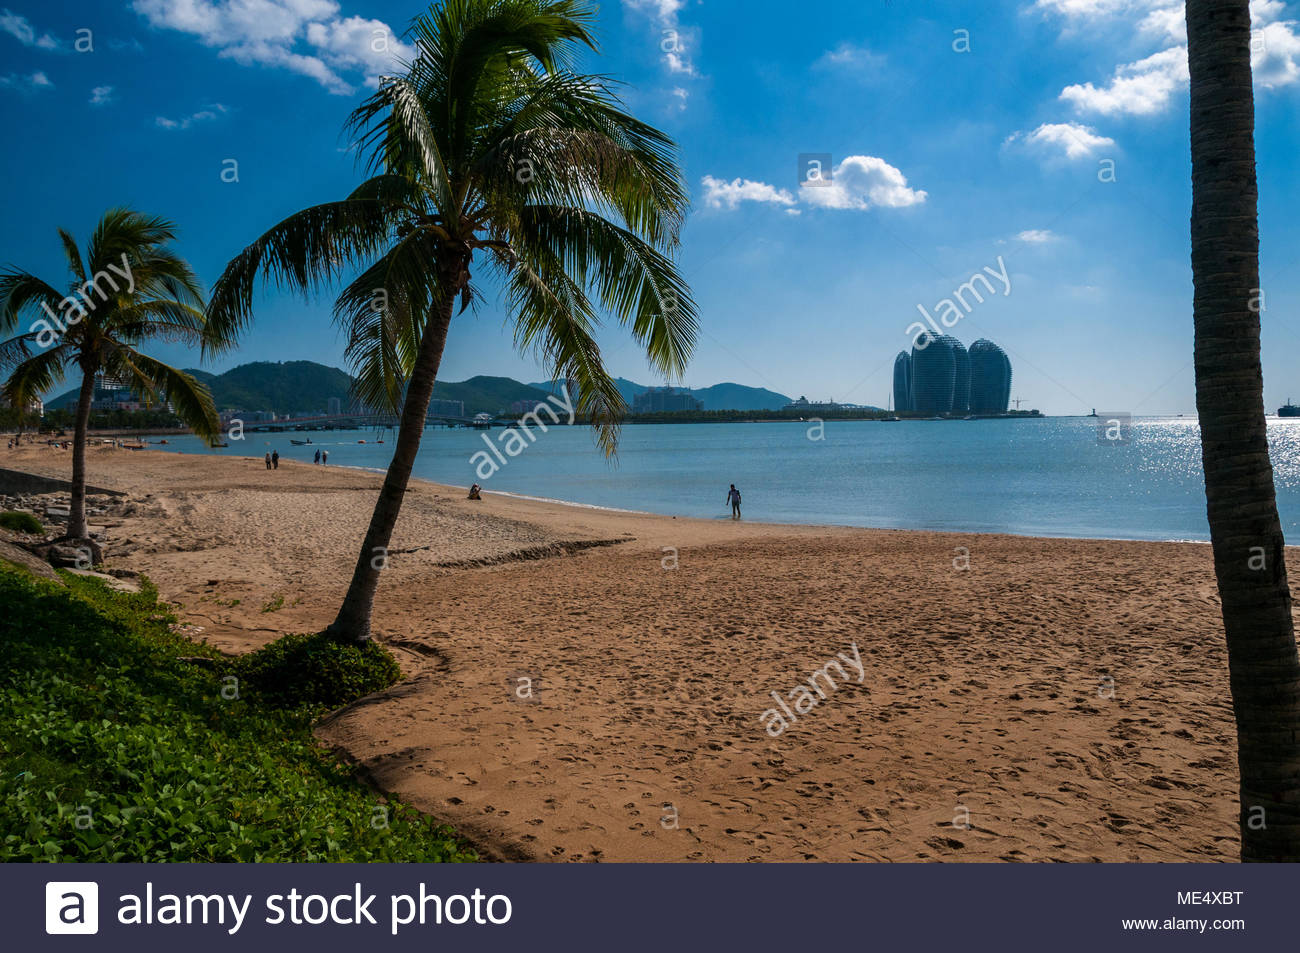 Beach in the main city part of Sanya with the buildings of Phoenix Island in the background. Hainan Island, China. - Stock Image